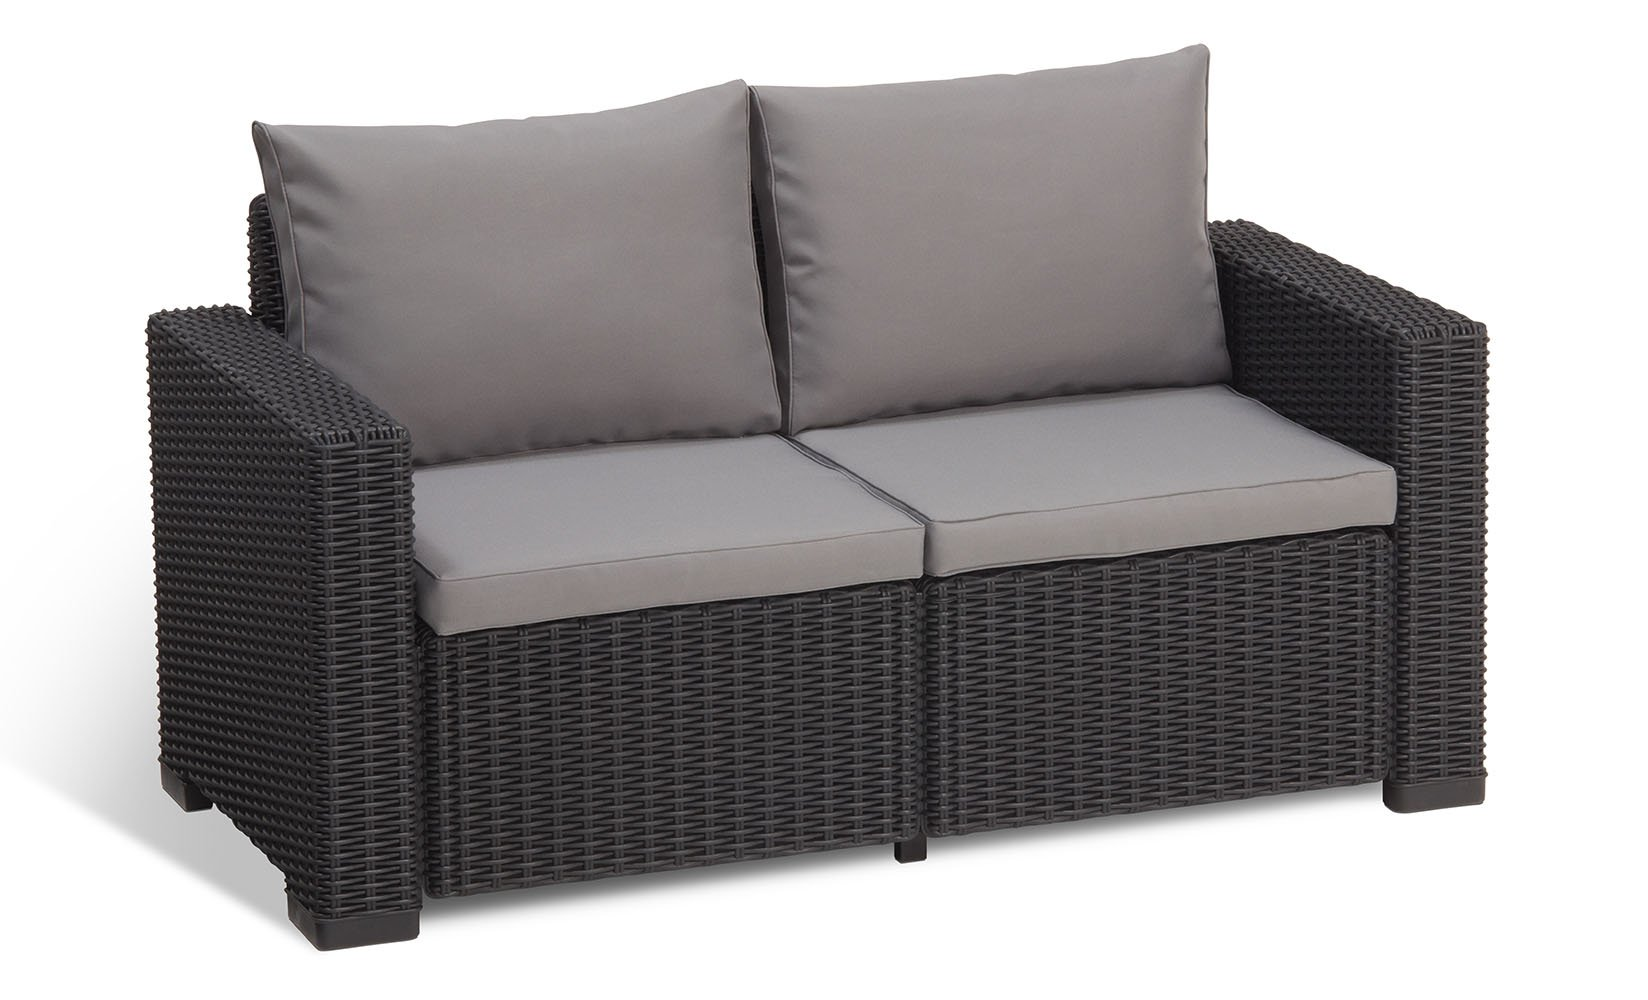 Keter California All Weather Outdoor 2-Seater Patio Sofa Loveseat with Cushions in a Resin Plastic Wicker Pattern, Graphite/Cool Grey by Keter